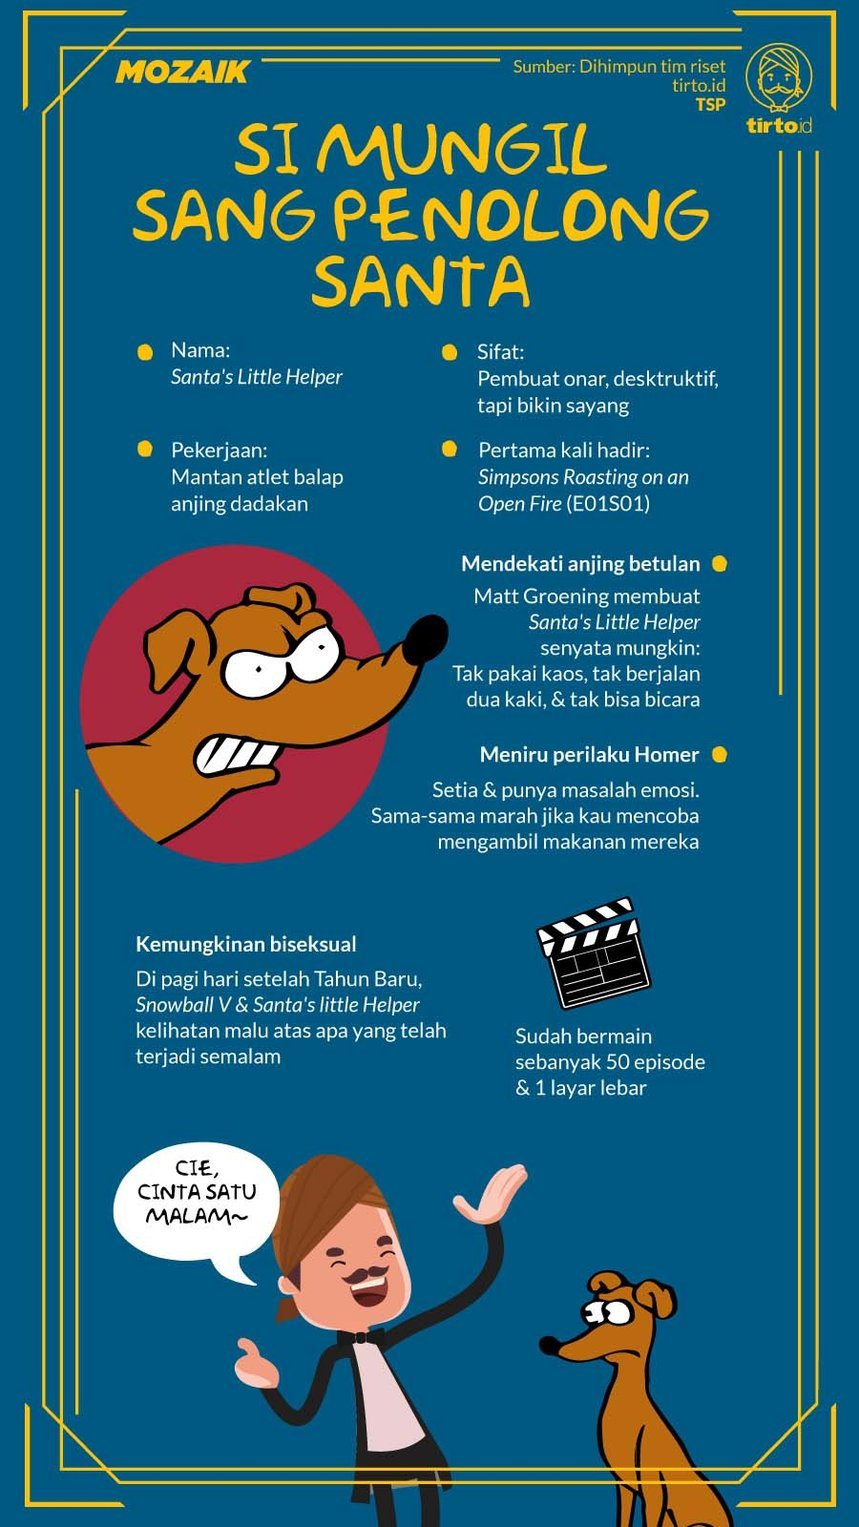 Infografik Mozaik The Simpsons